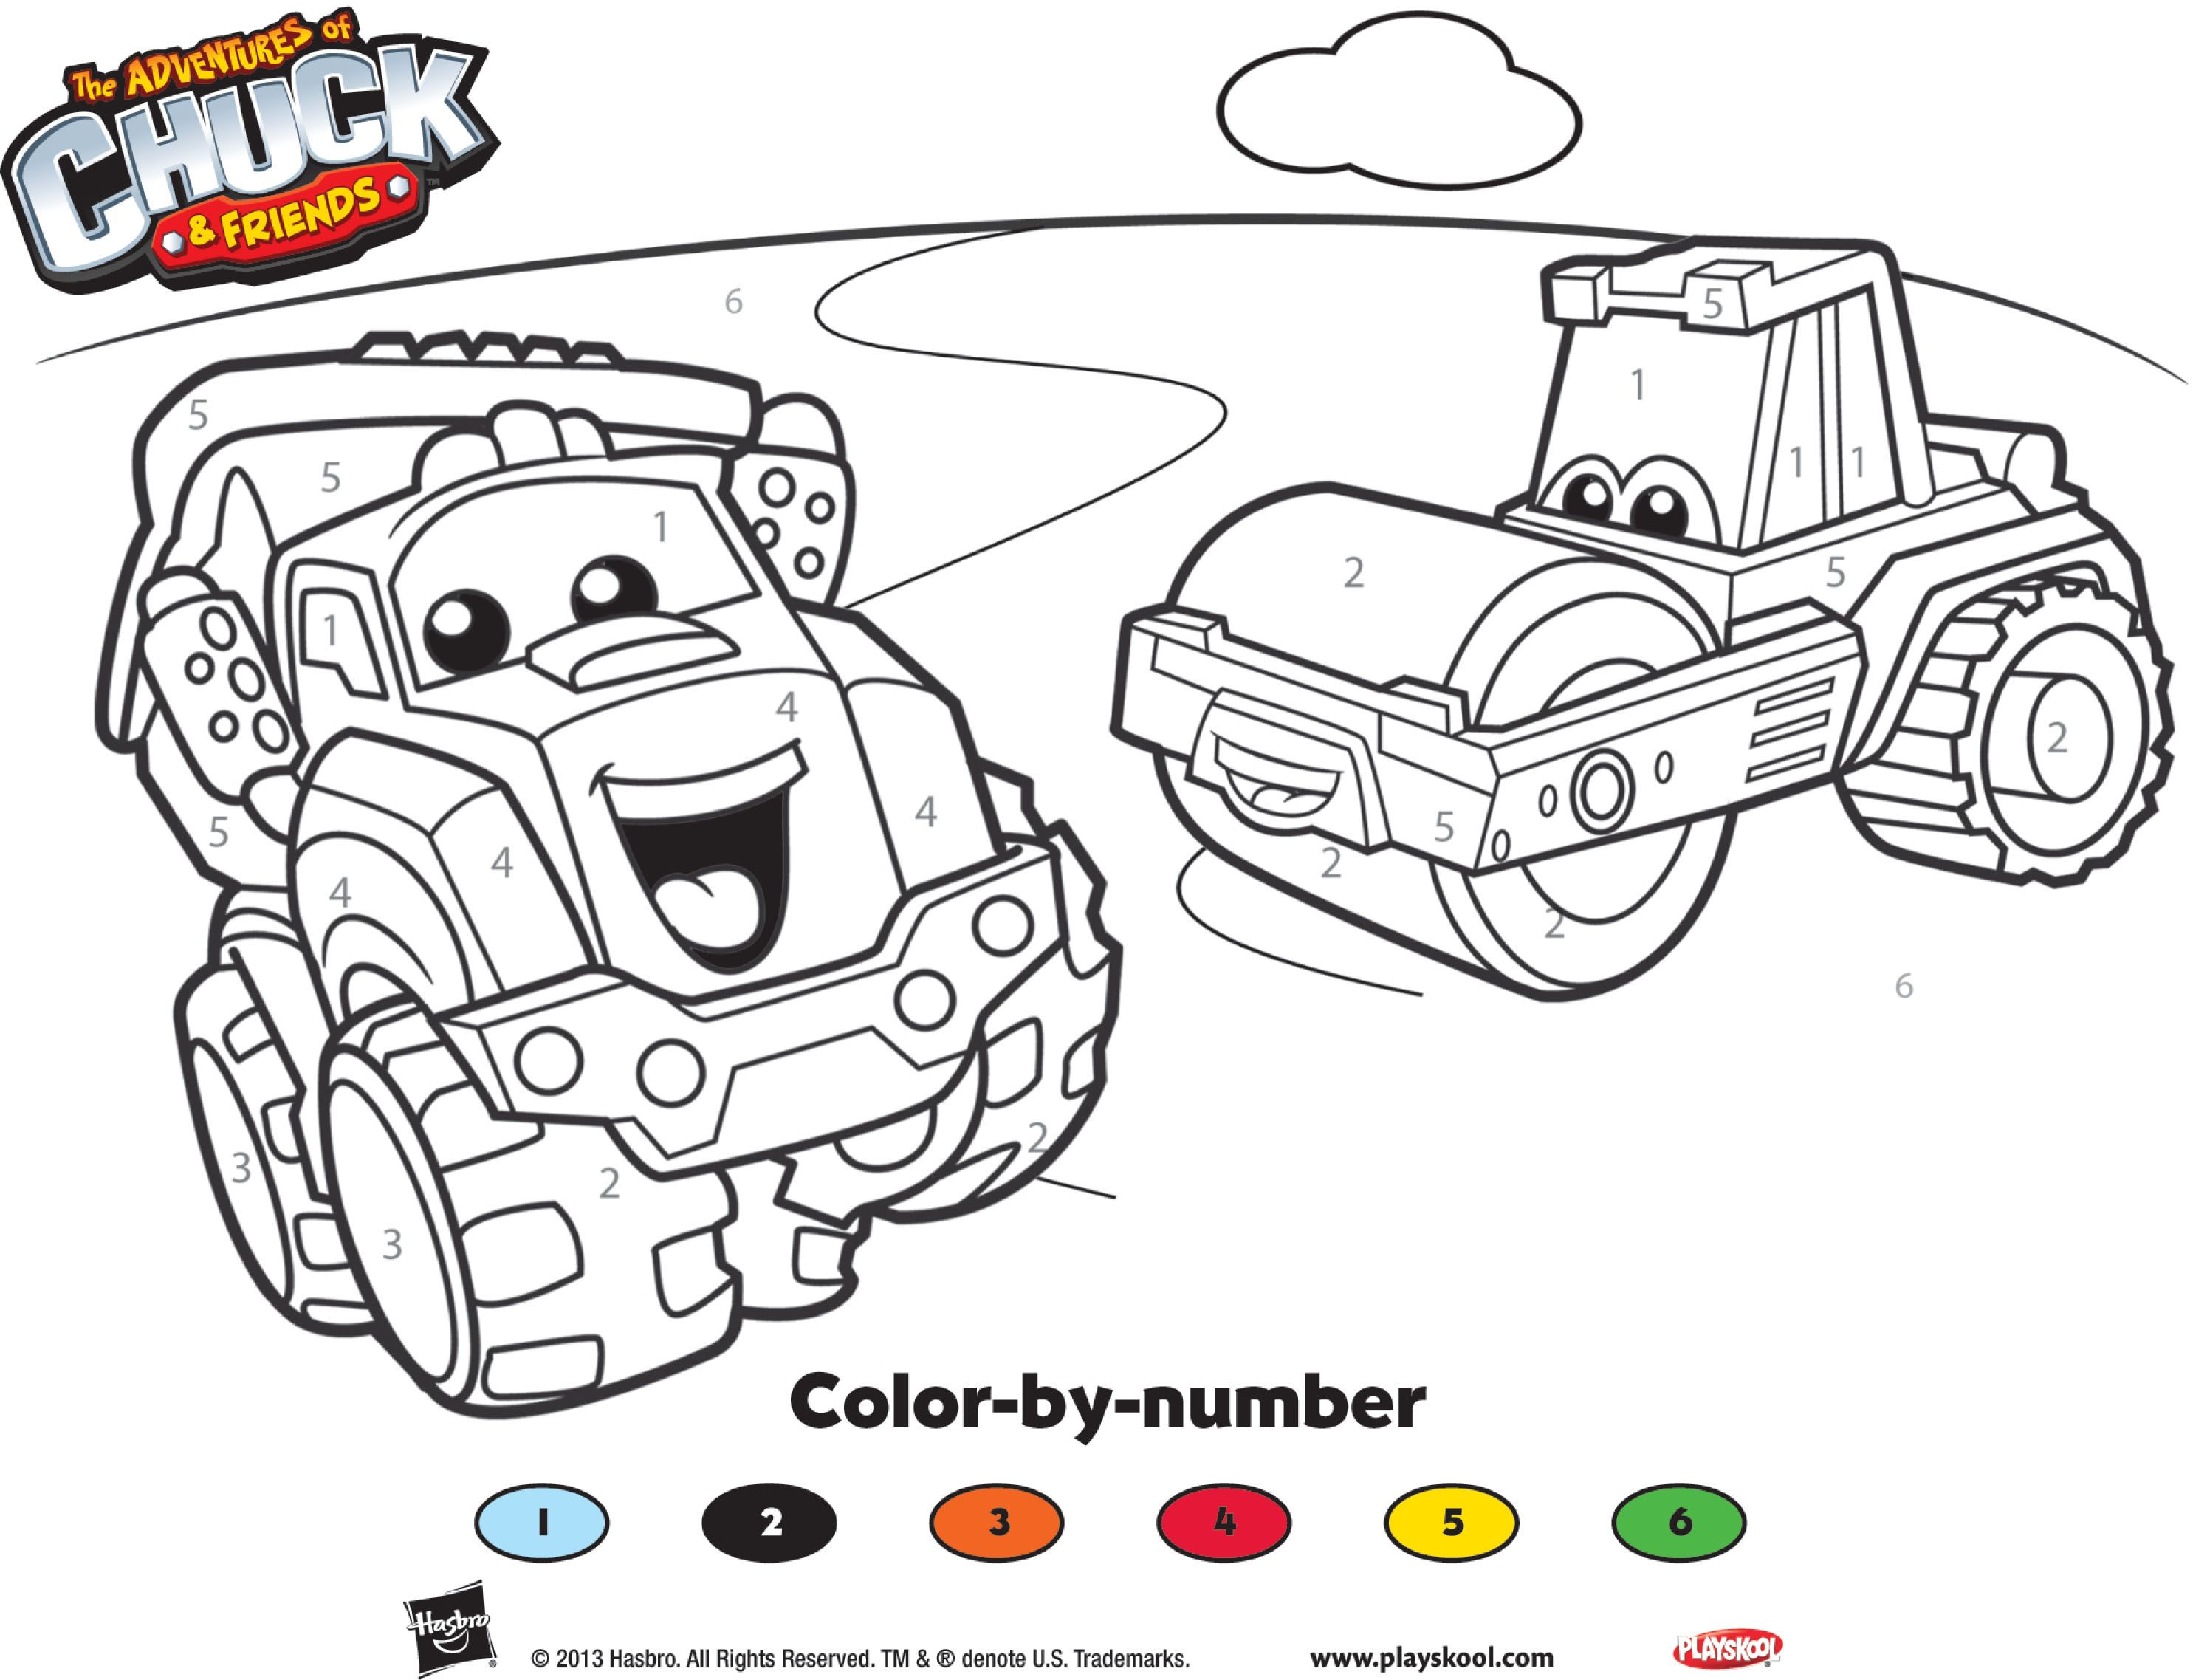 Great Coloring Activity From Chuck And Friends To Keep The Kids Entertained Playskool Kids Entertainment Color Activities